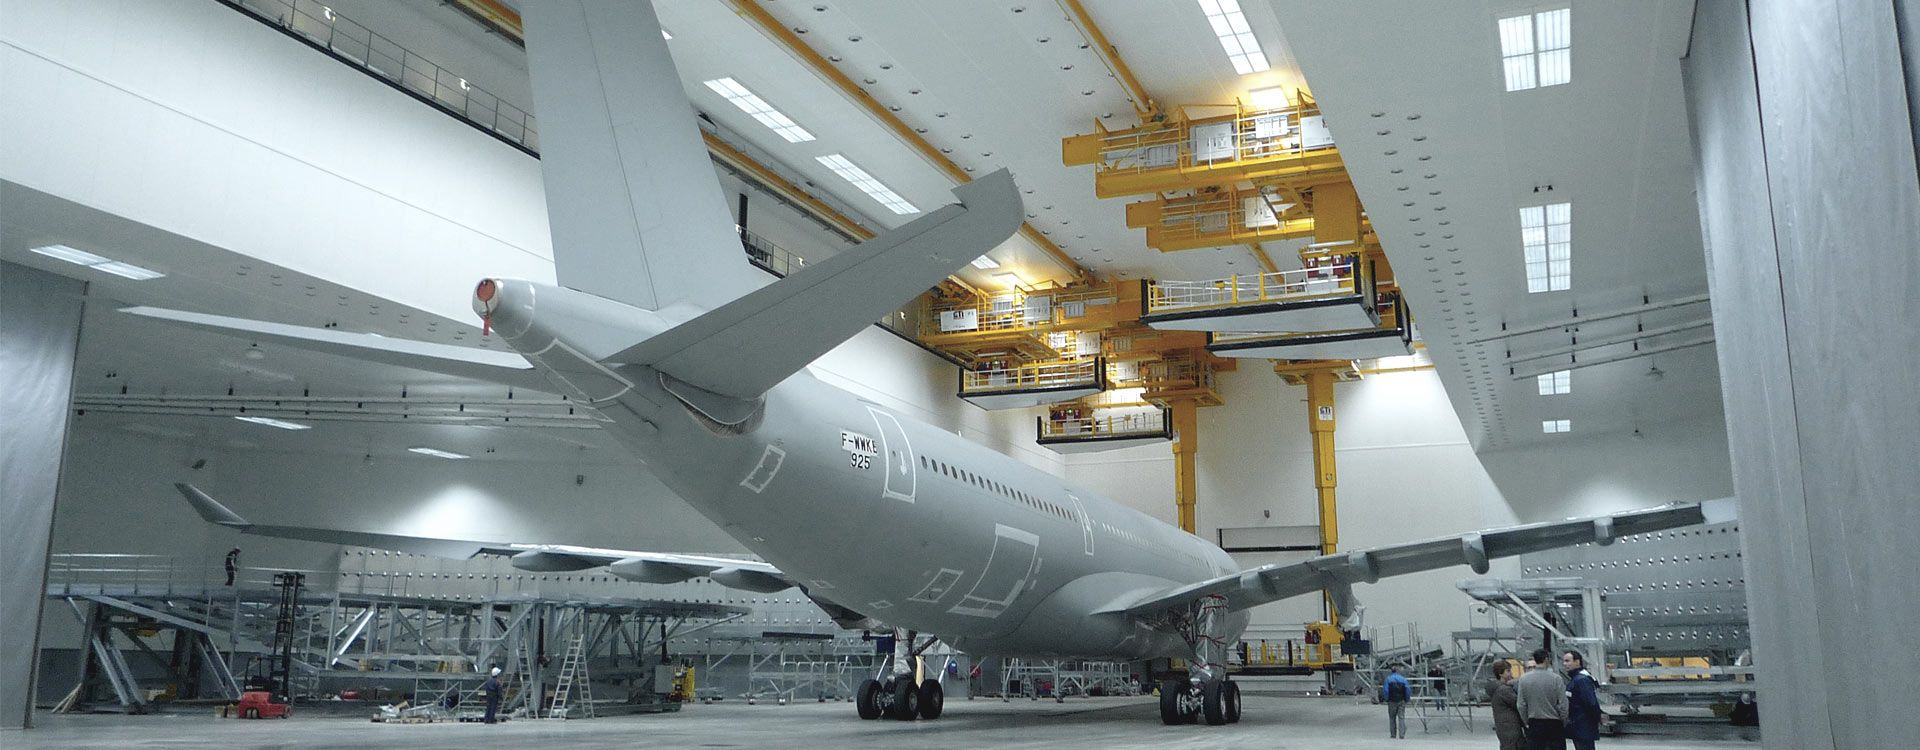 Paint hangar for wide-body aircraft